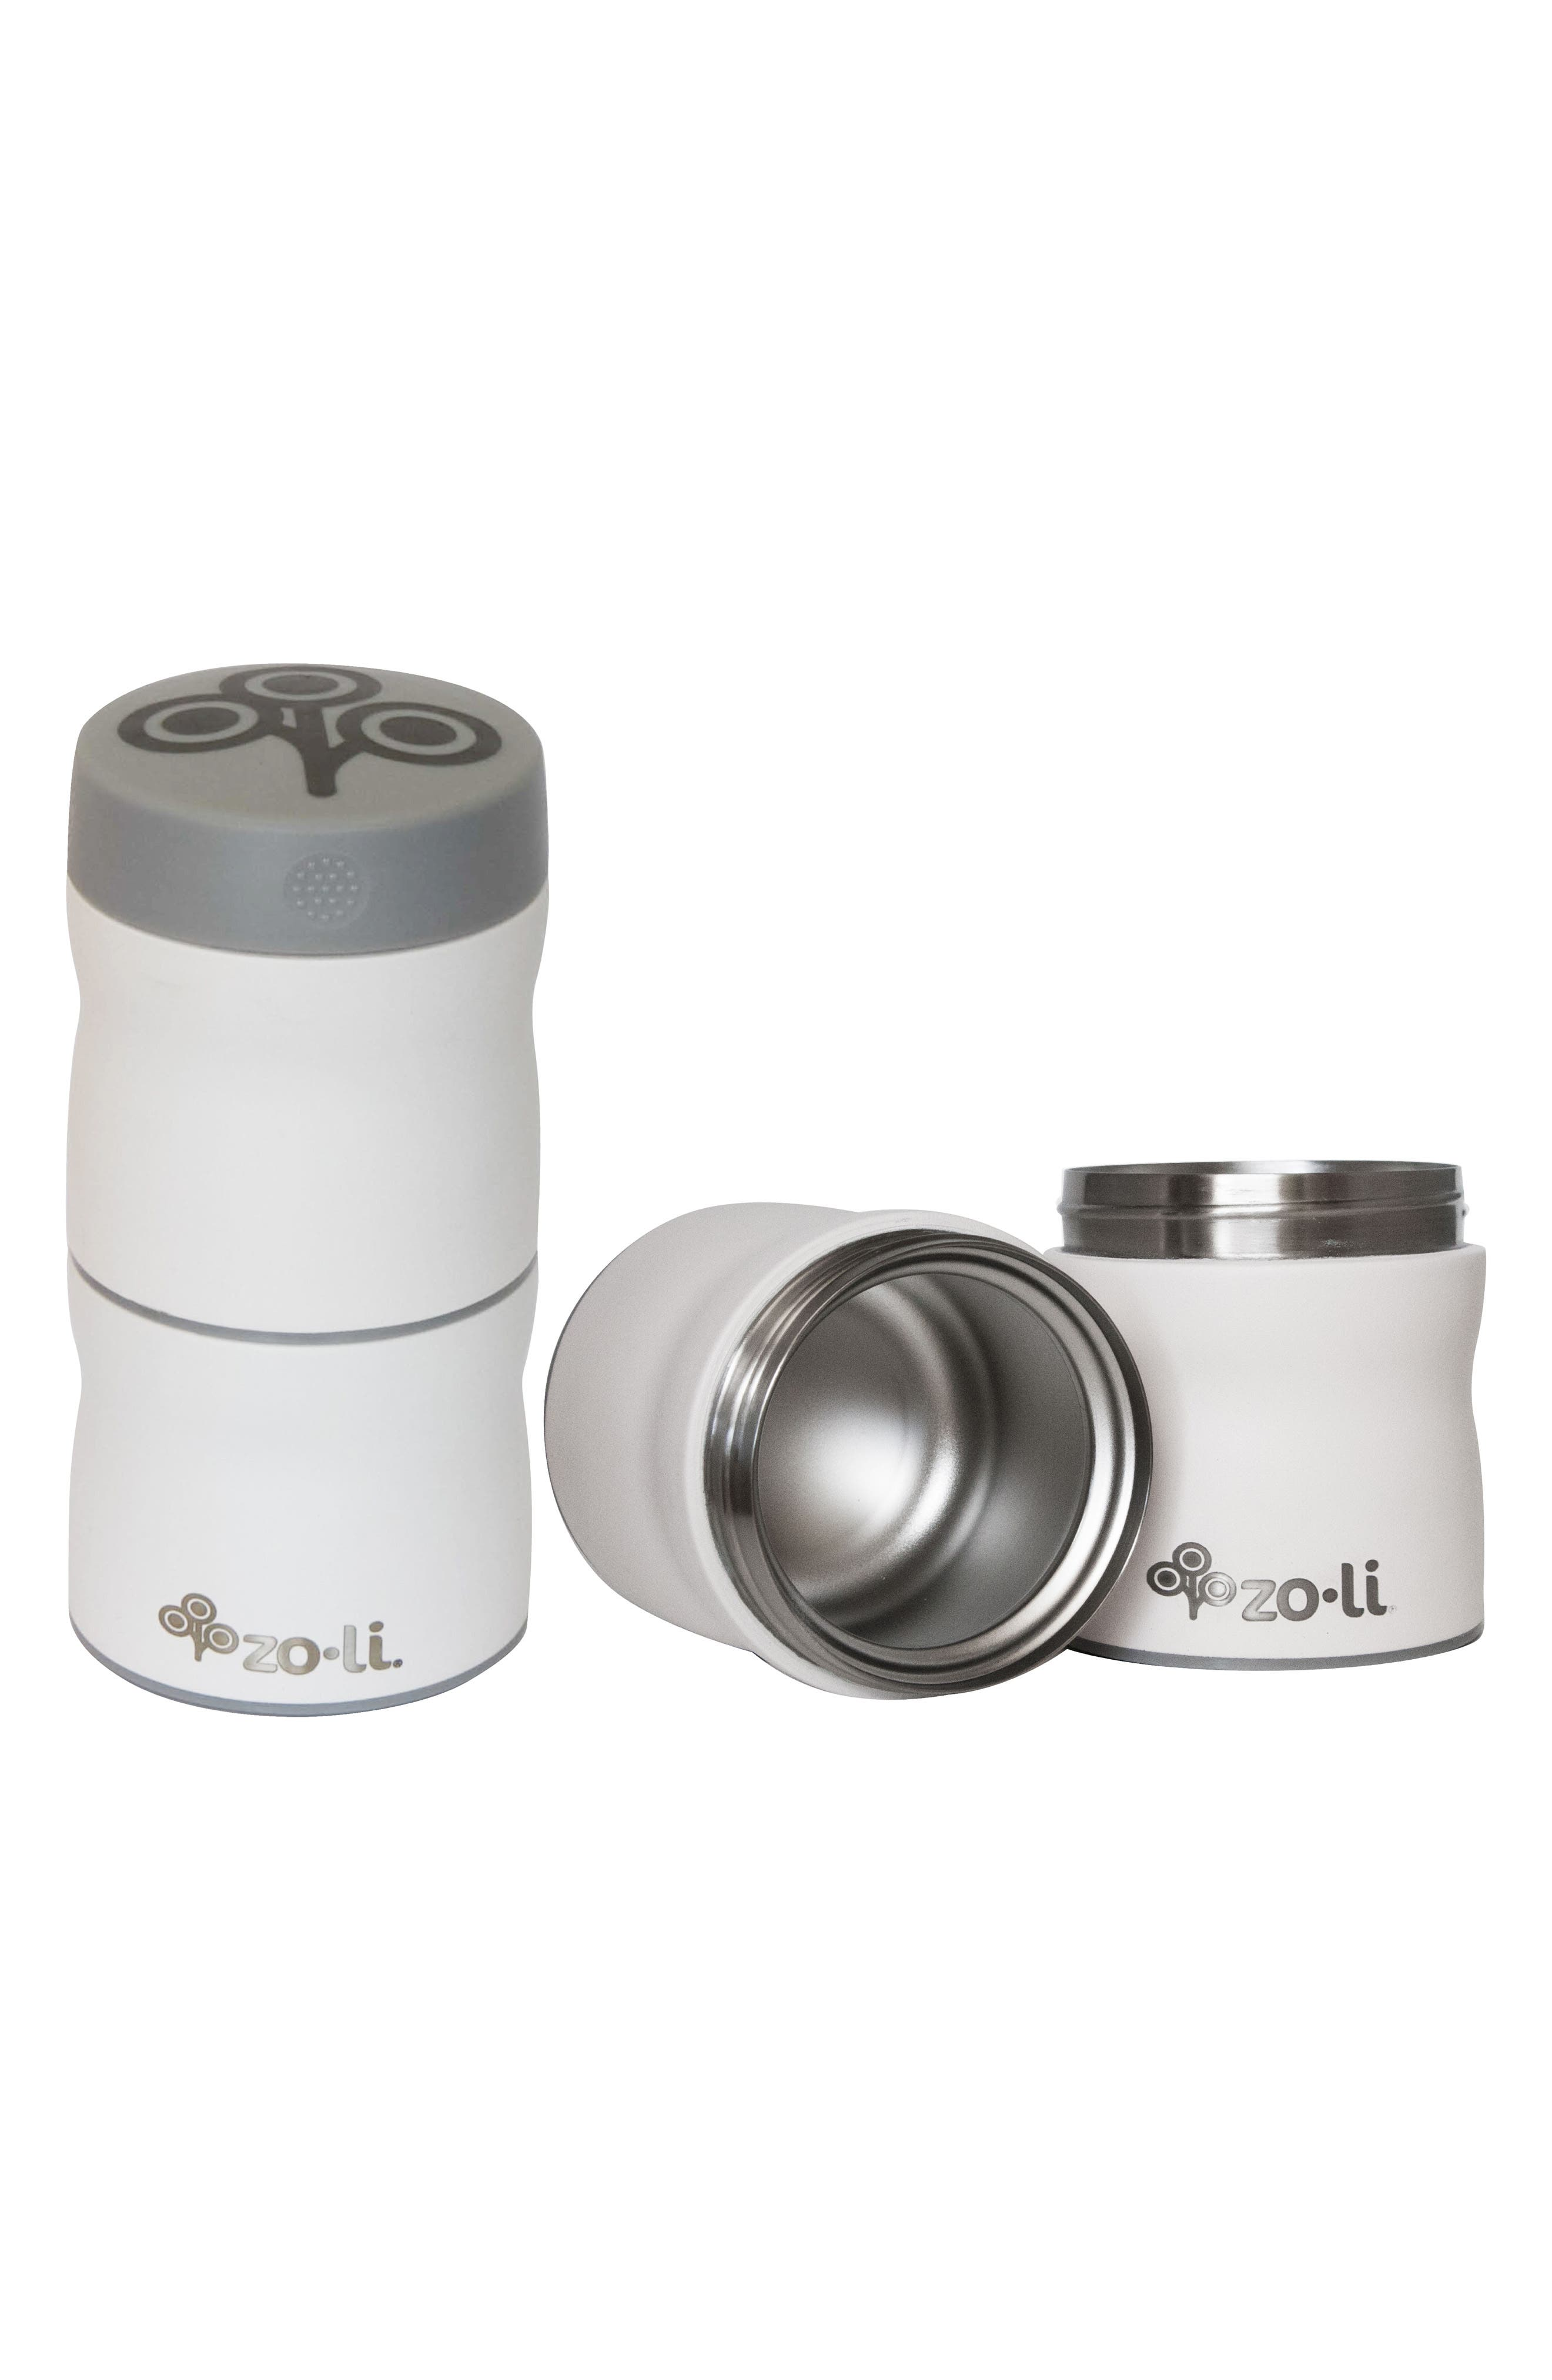 ZoLi This & That Stackable Insulated Containers